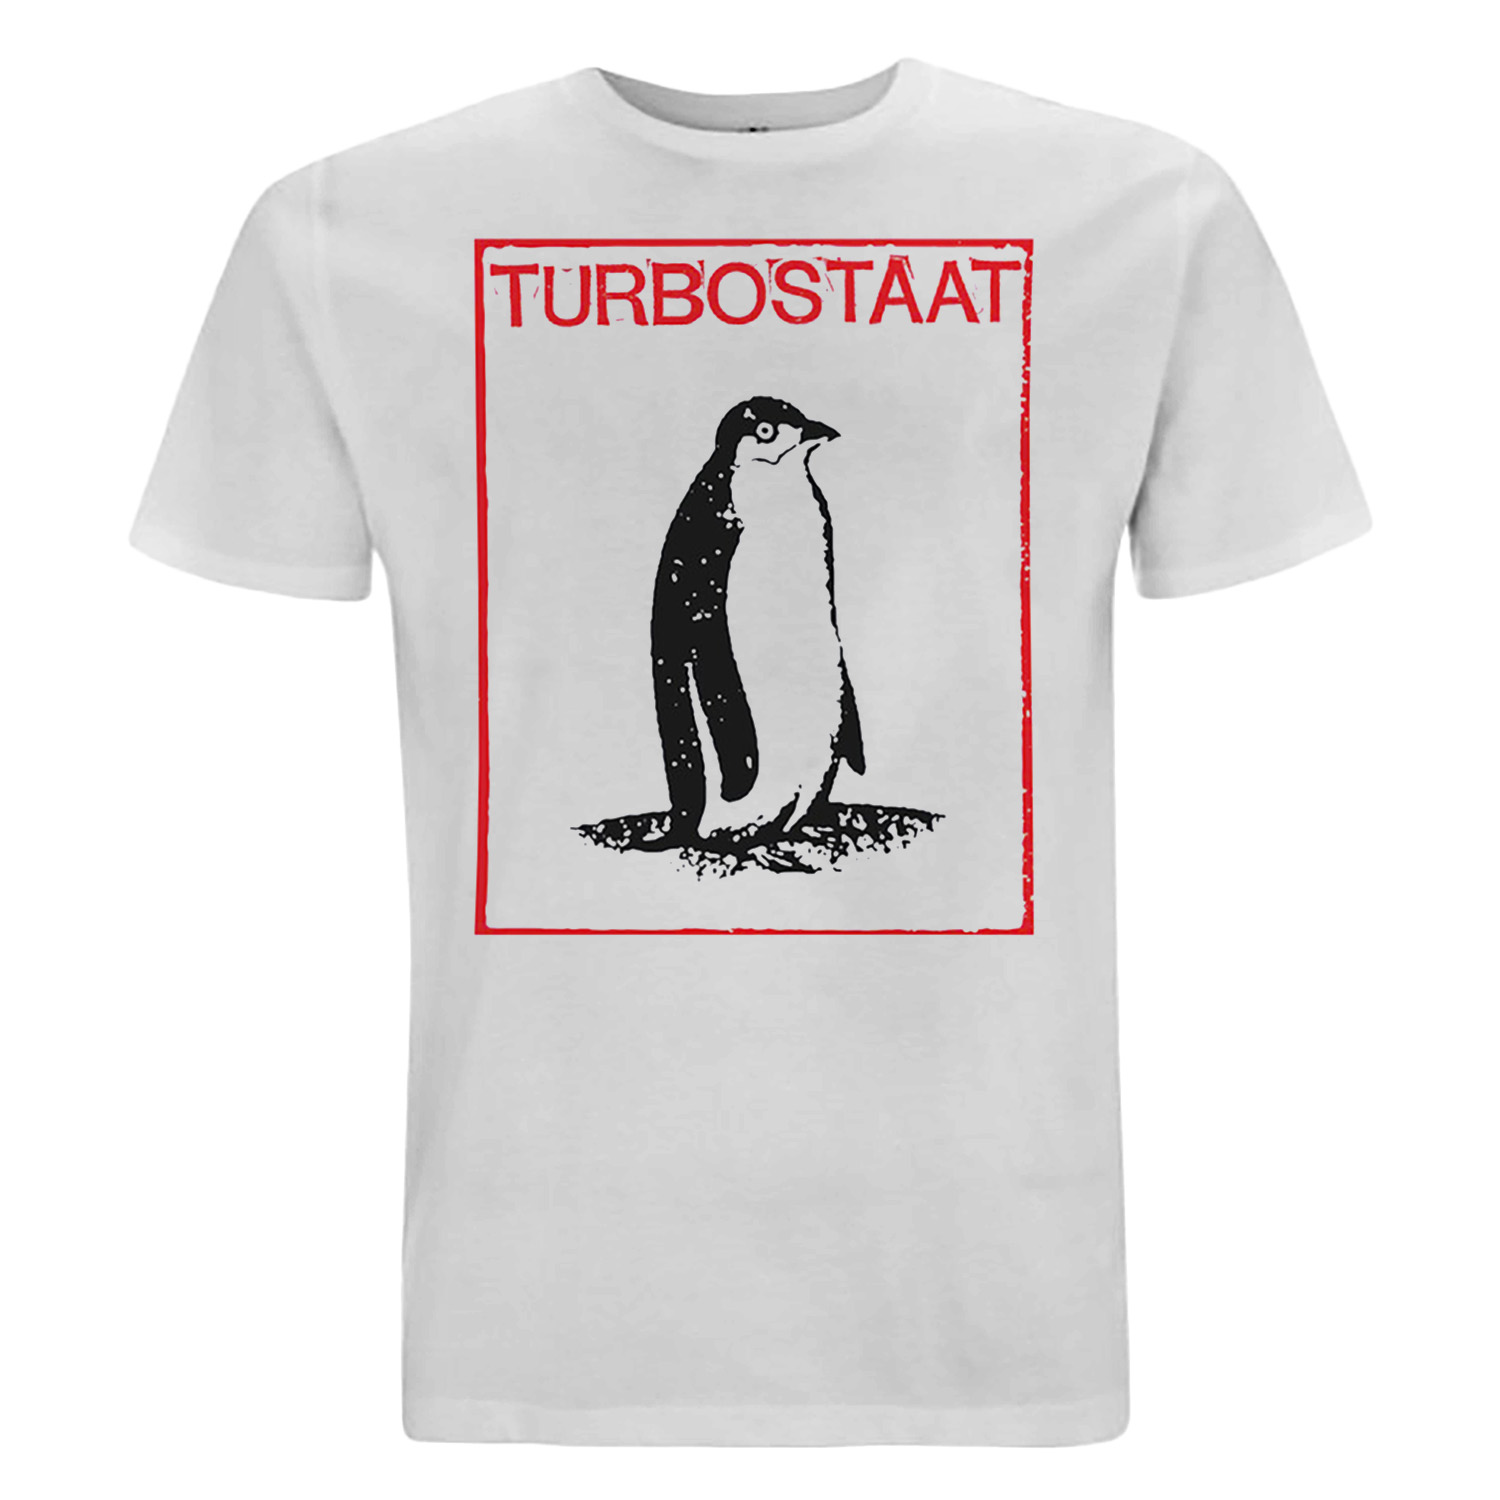 Turbostaat Pinguin T-Shirt weiß